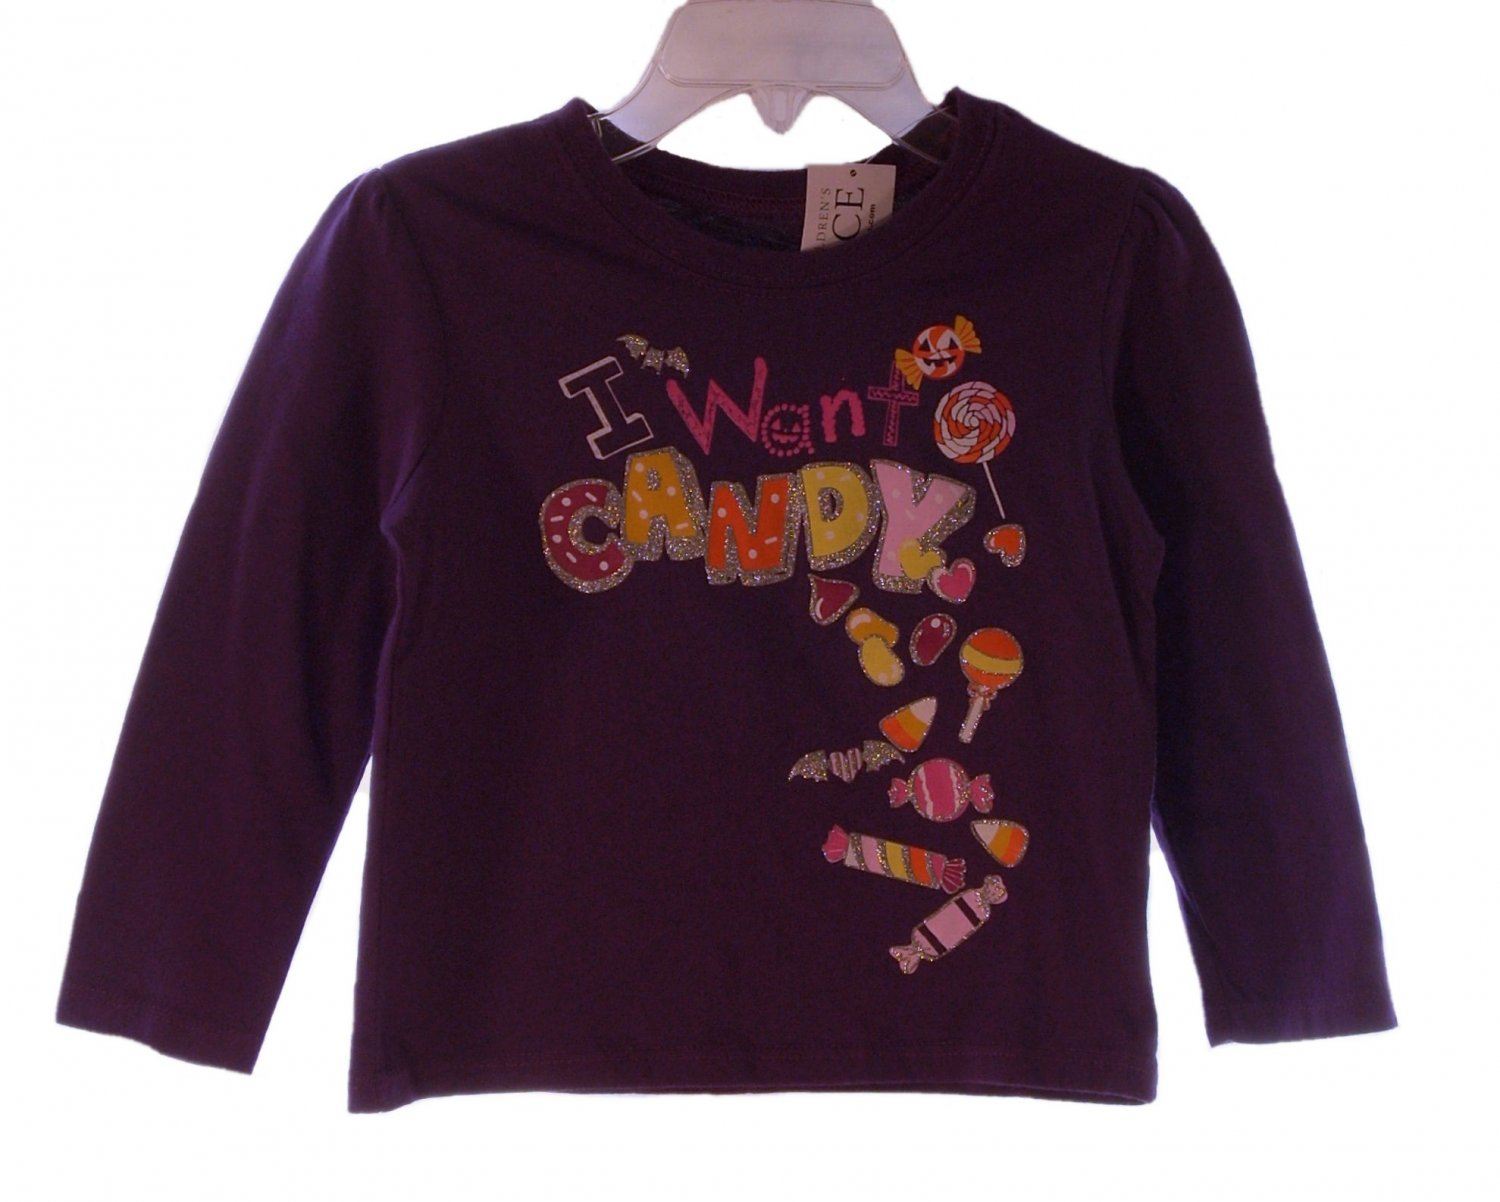 The Children's Place Toddler Girls Purple I Want Candy Long Sleeve T-Shirt 18 - 24 Months